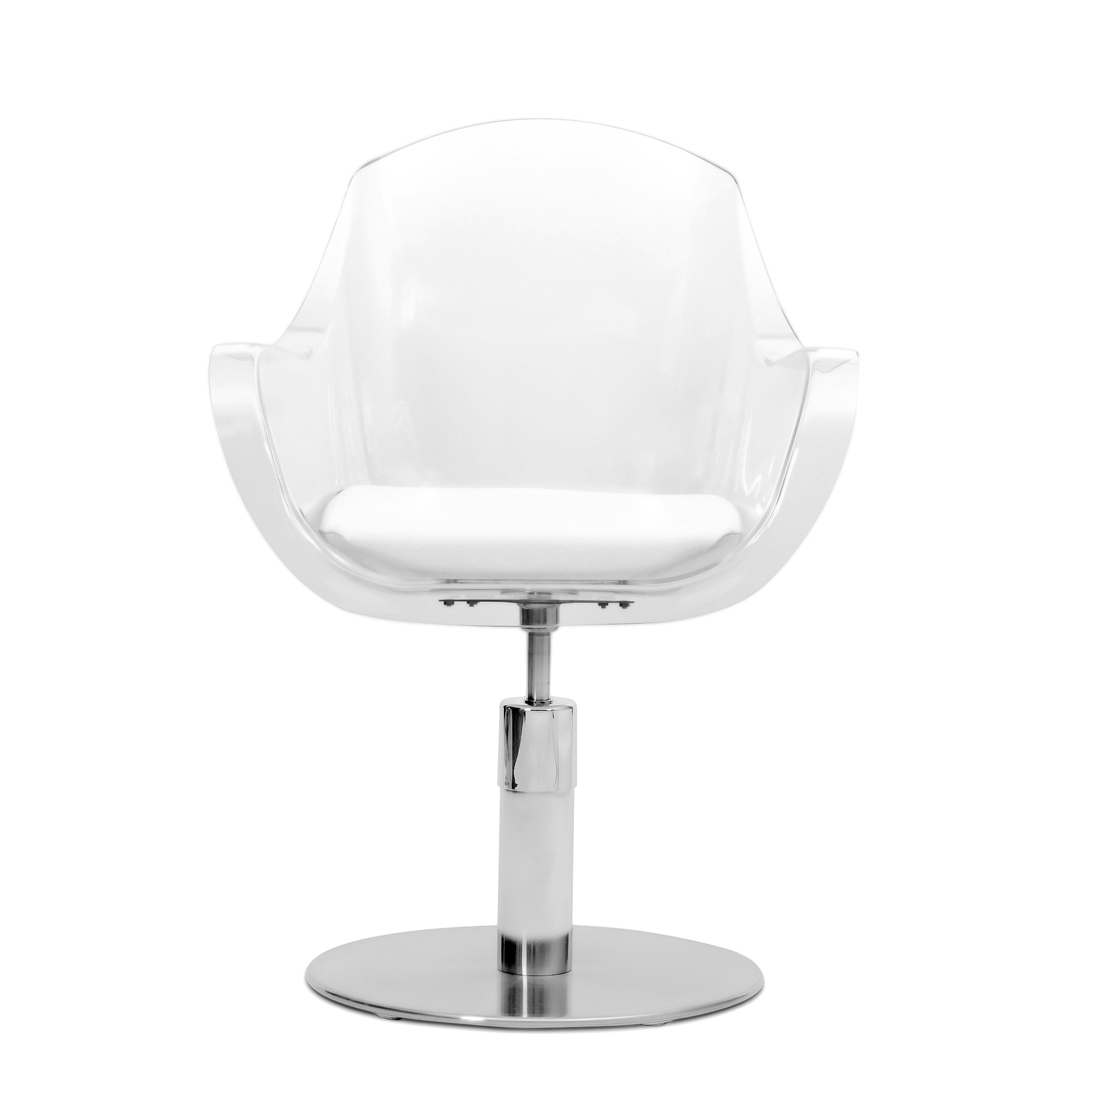 CINDARELLA – Manon chair 2